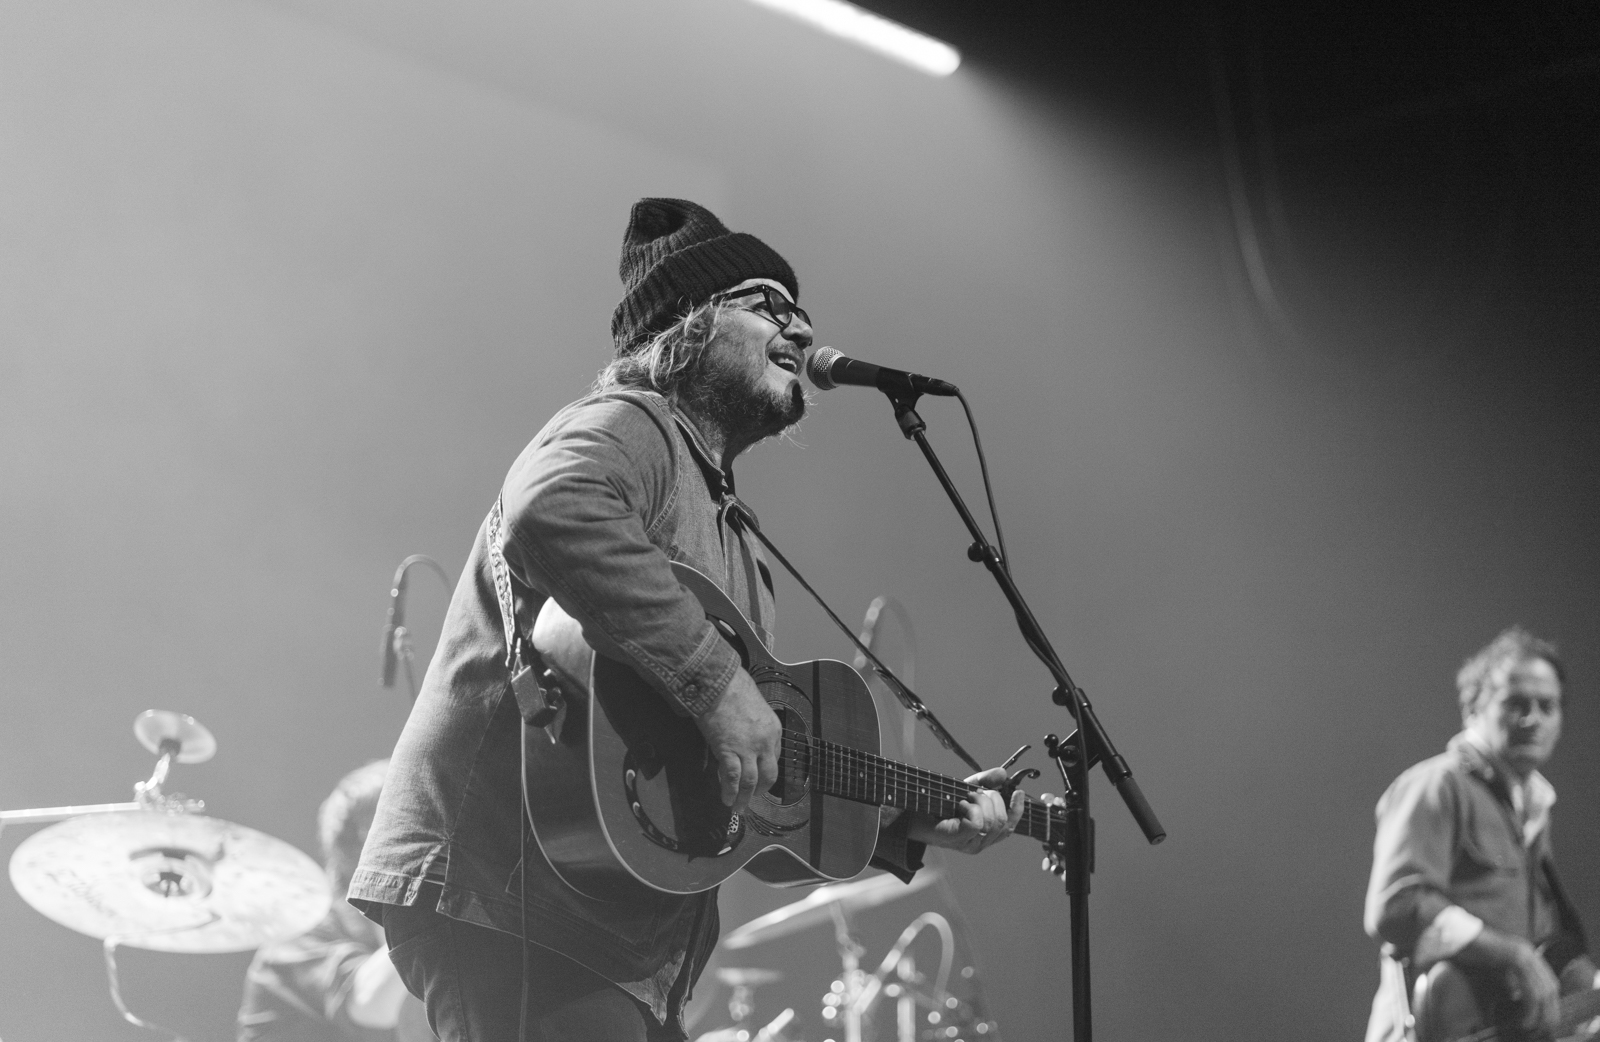 Wilco_Palace_112219_Christopher_Goyette_25